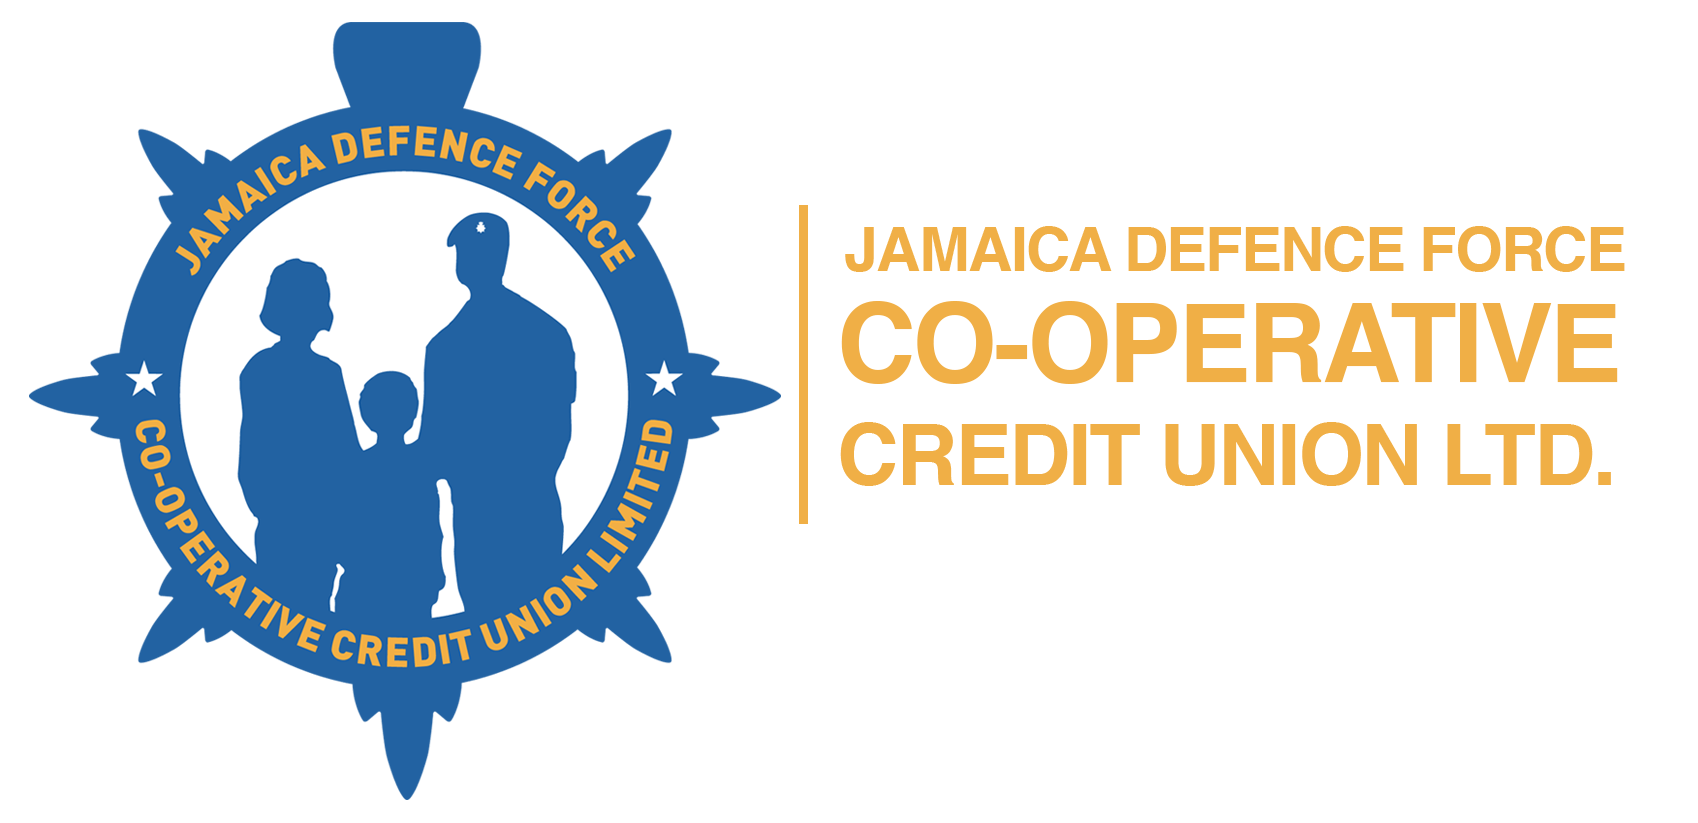 Jamaica Defence Force Credit Union